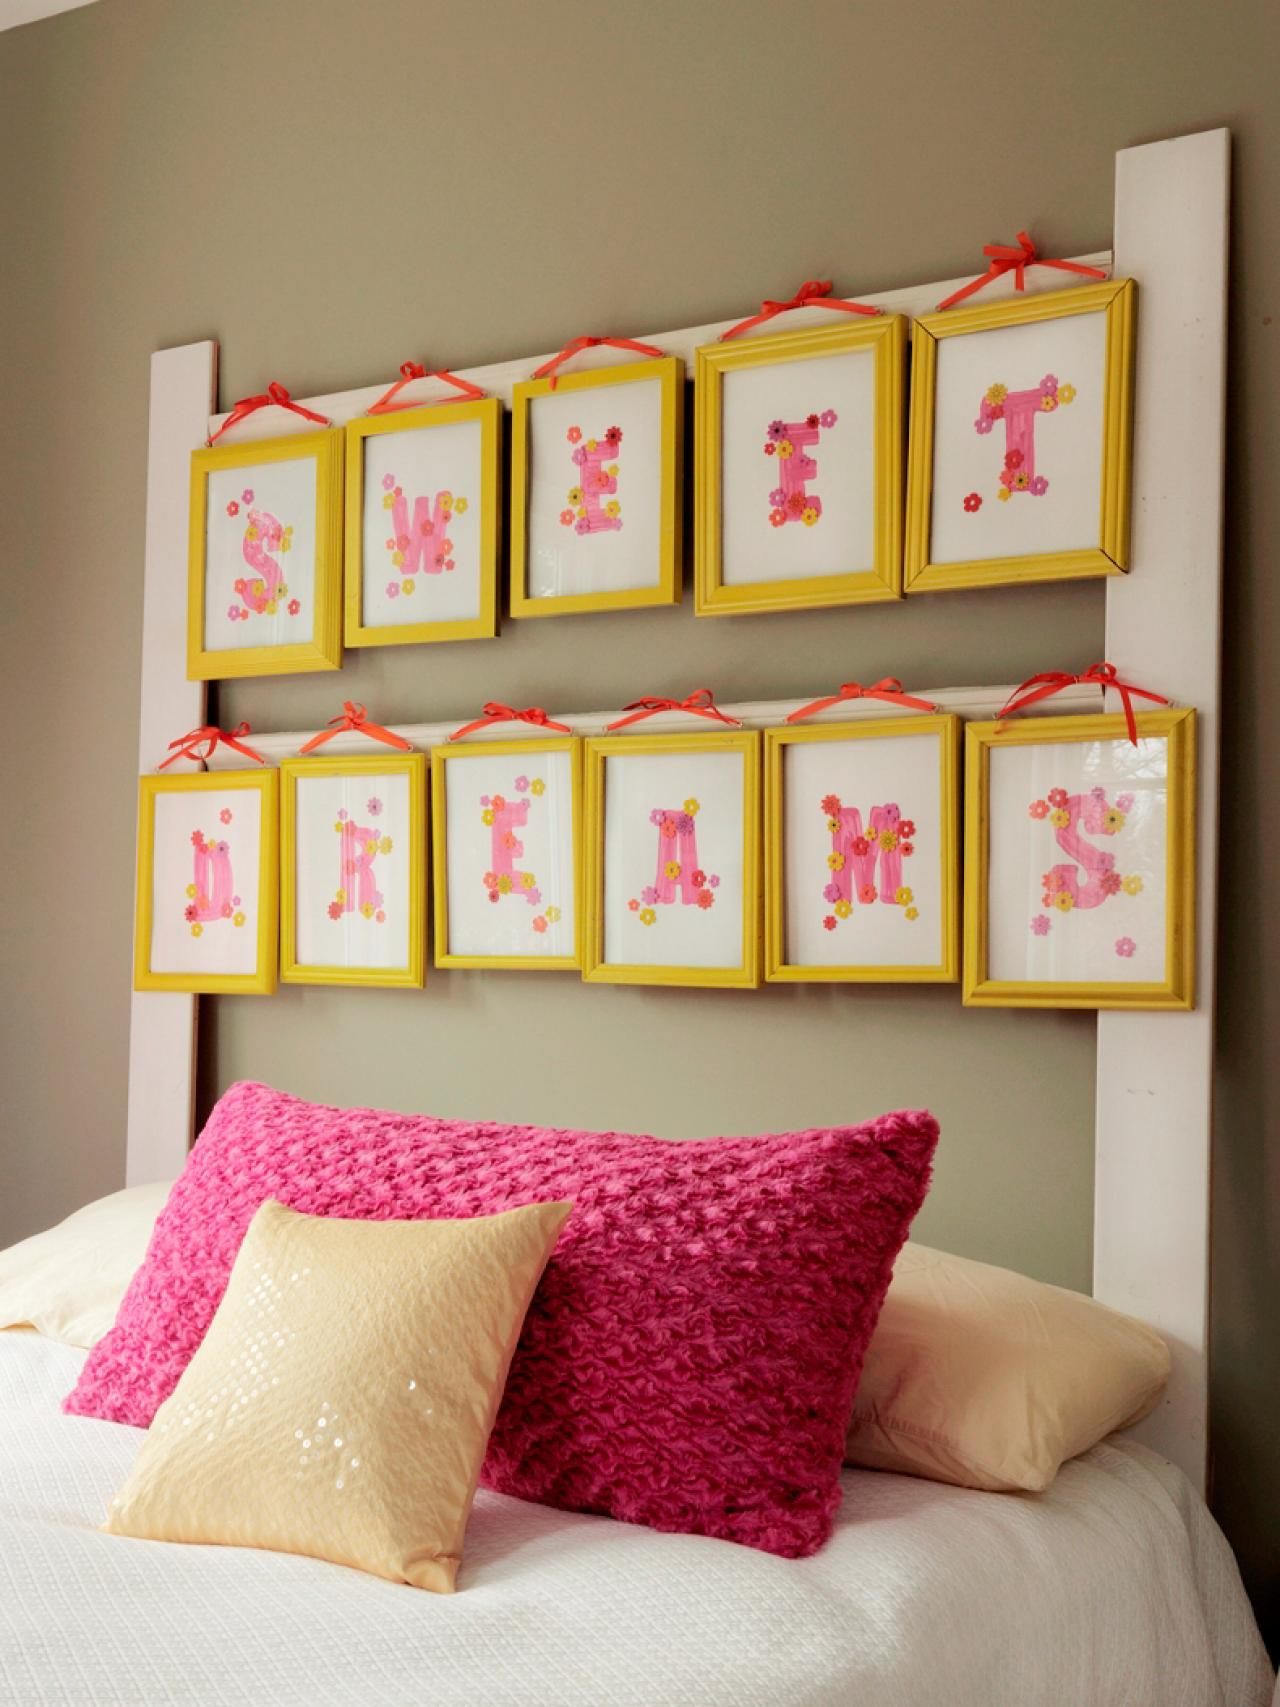 How to Make a Headboard With Picture Frames | how-tos | DIY